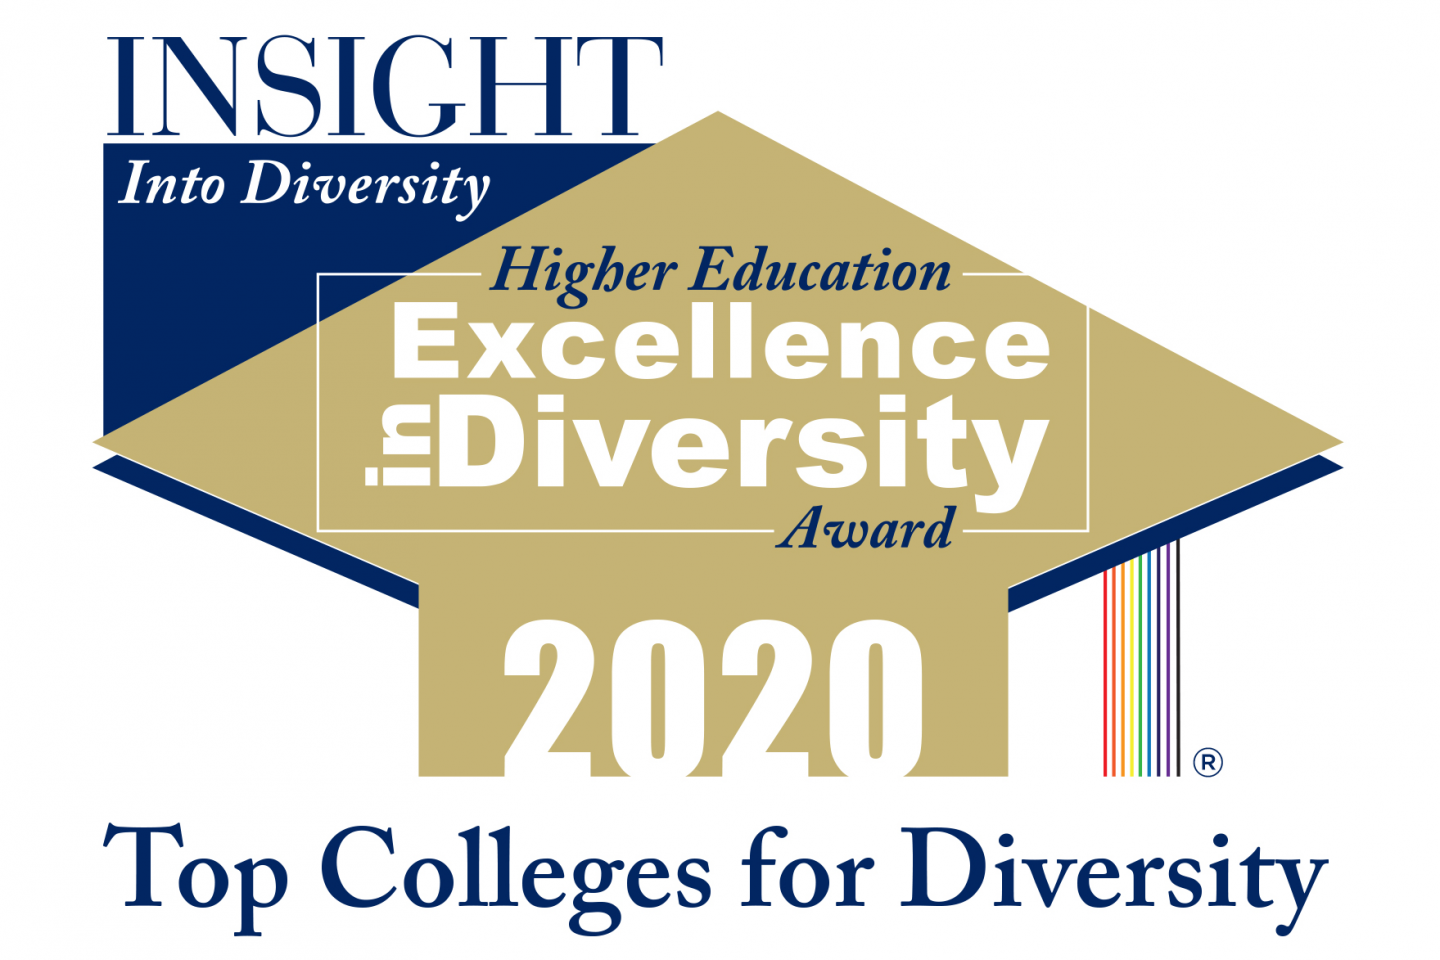 Higher Education Excellence in Diversity award.